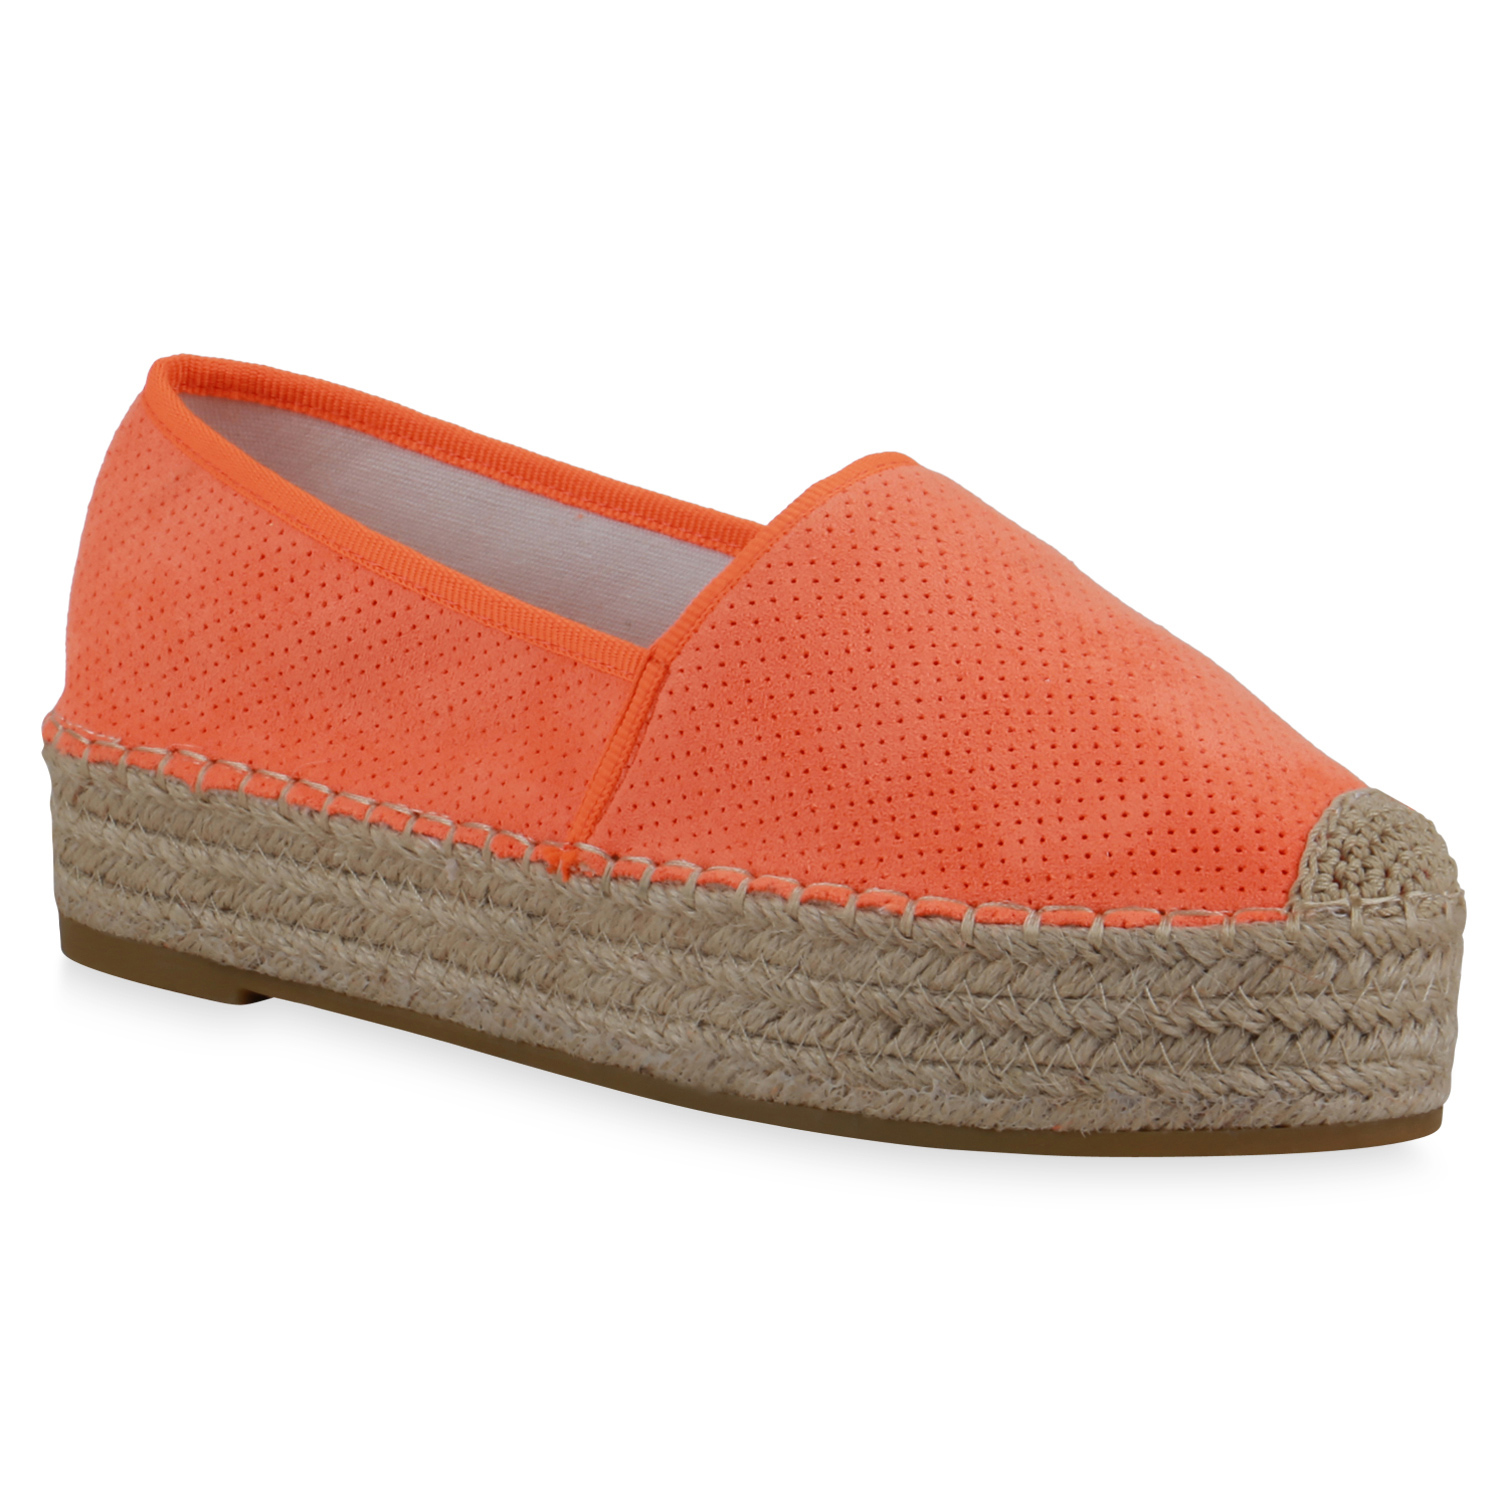 Damen Slippers Espadrilles - Neon Orange